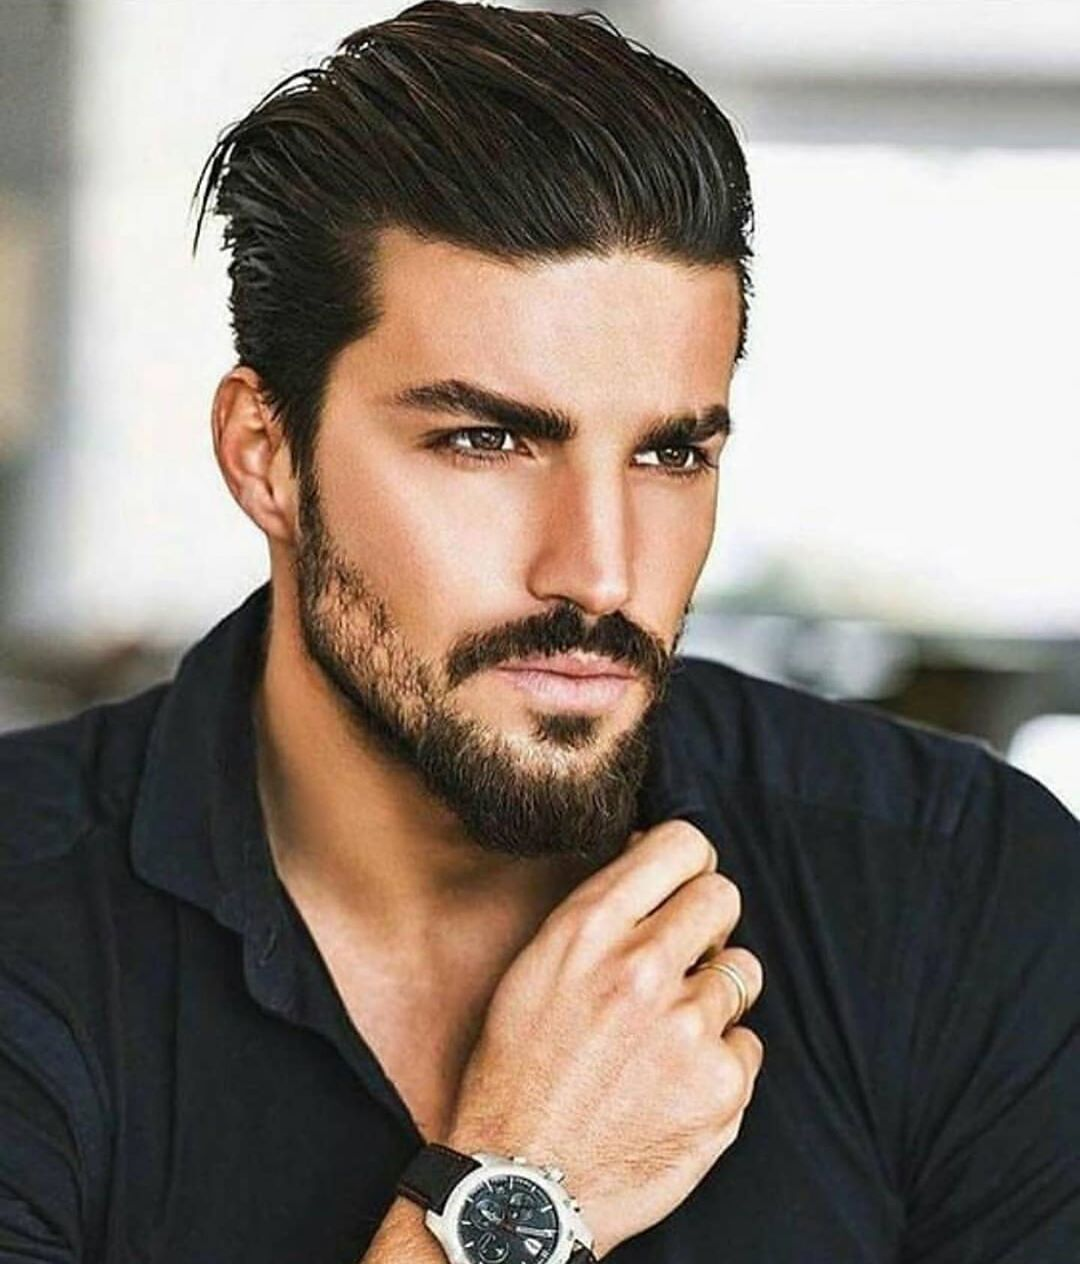 Or This Hairstyle Menslifehairstyles Menslifefashion Mensfashion Mensstyle Menwithstyle Menwithclass Fashion In 2020 Heren Kapsel Mooie Mannen Kapsels